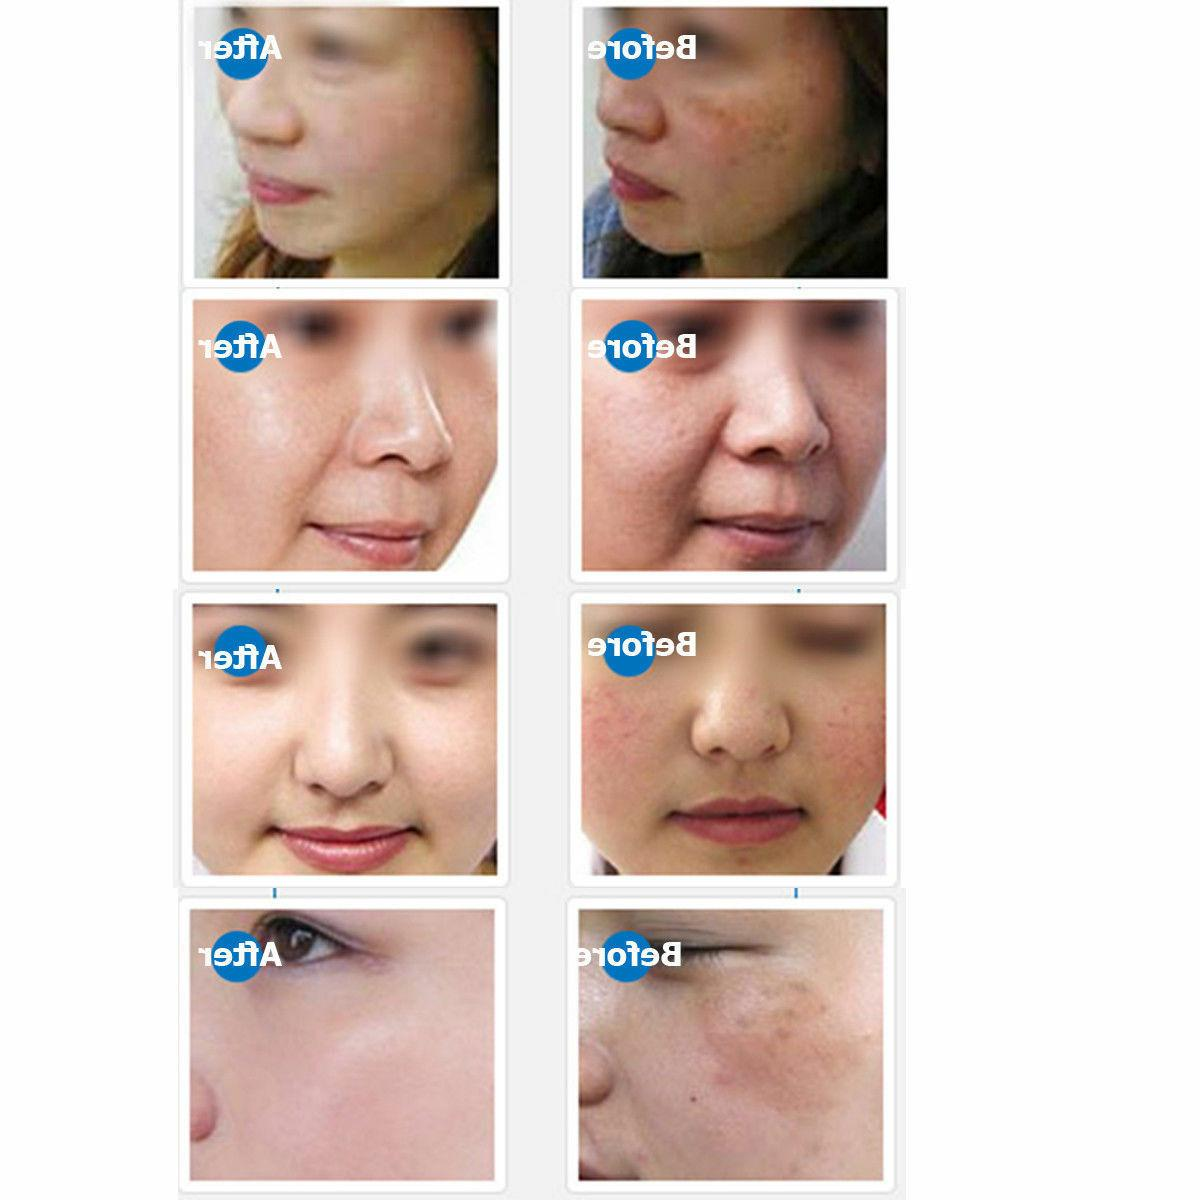 DRS Microneedle Derma Therapy